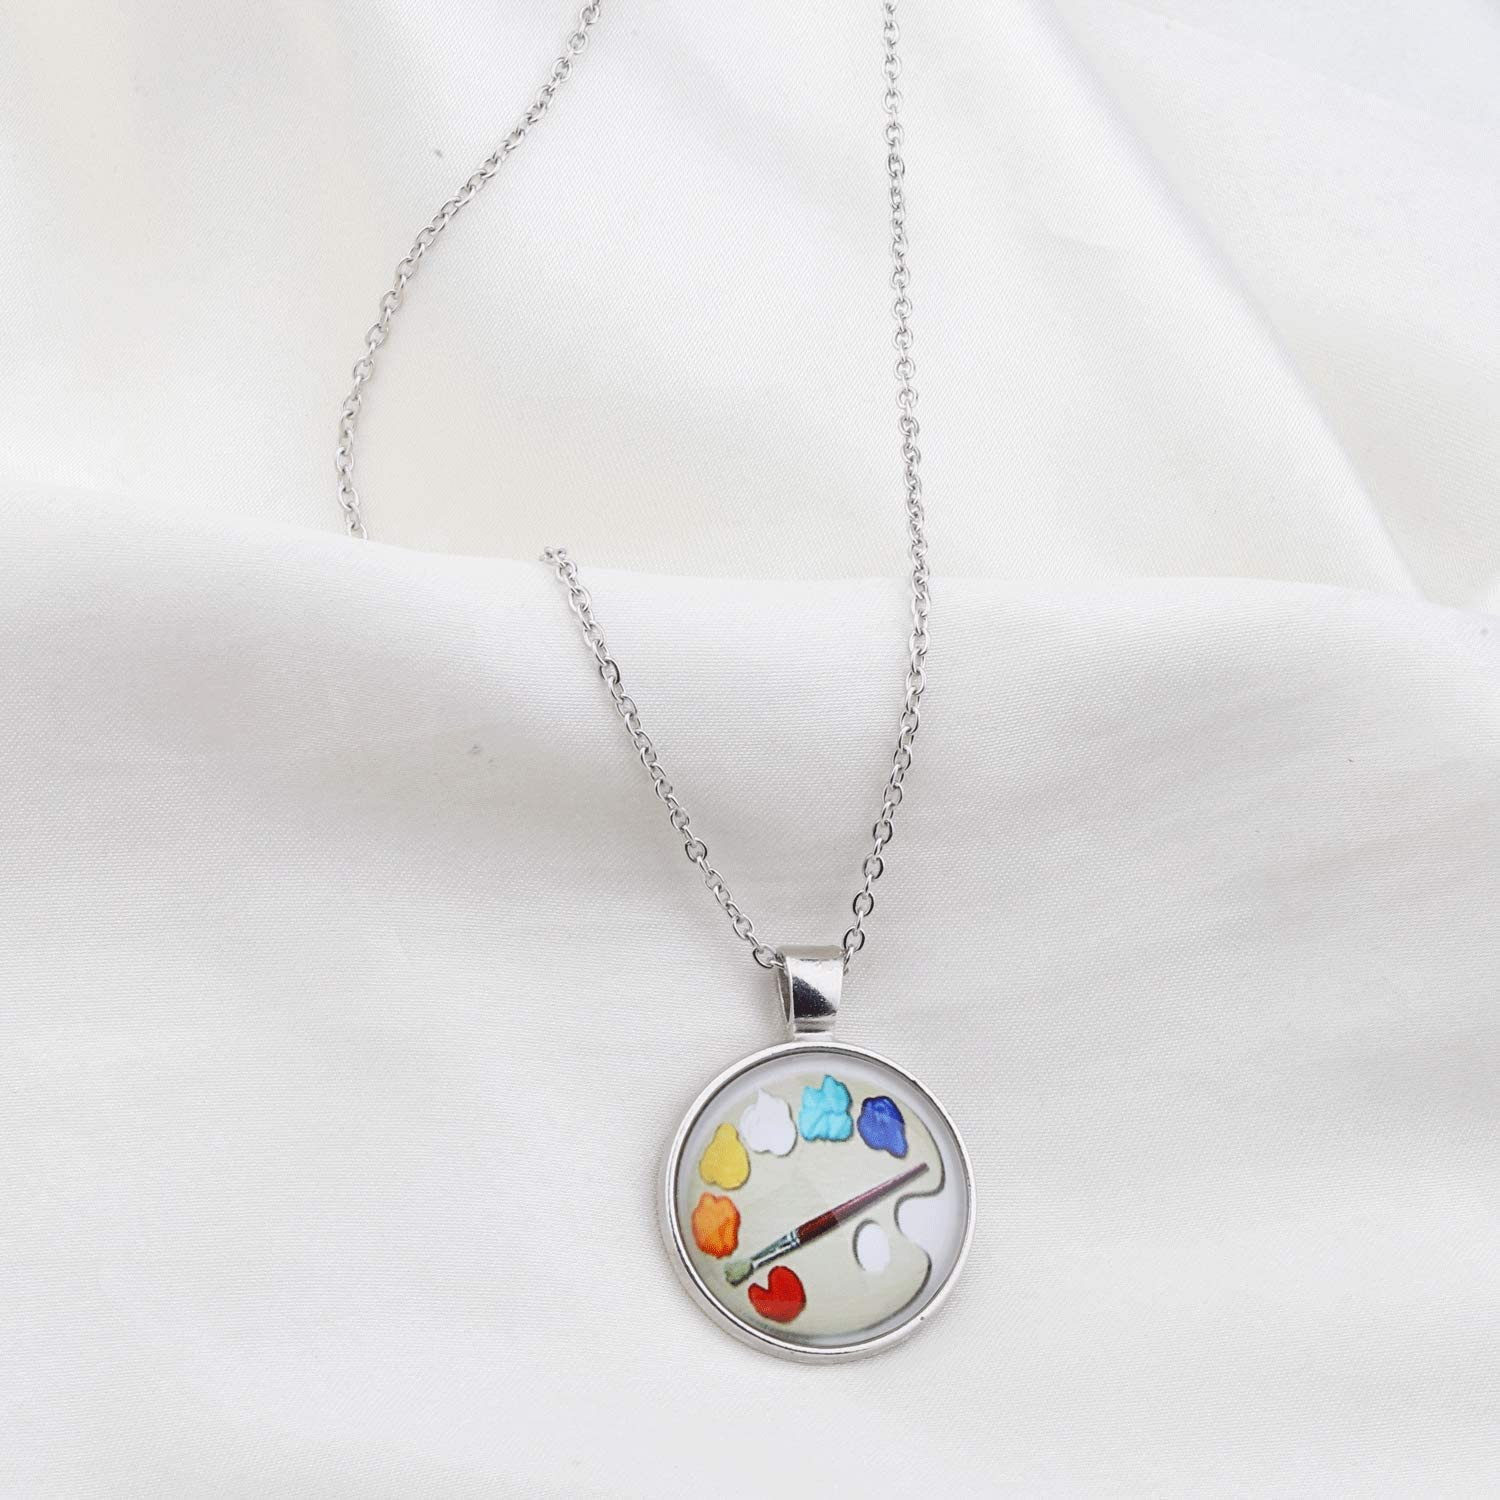 WSNANG Artist Gift Painter Gift Cartoon Color Drawing Board Pendant Necklace Art Student Gift Art School Graduation Gift Painting Girl Gift